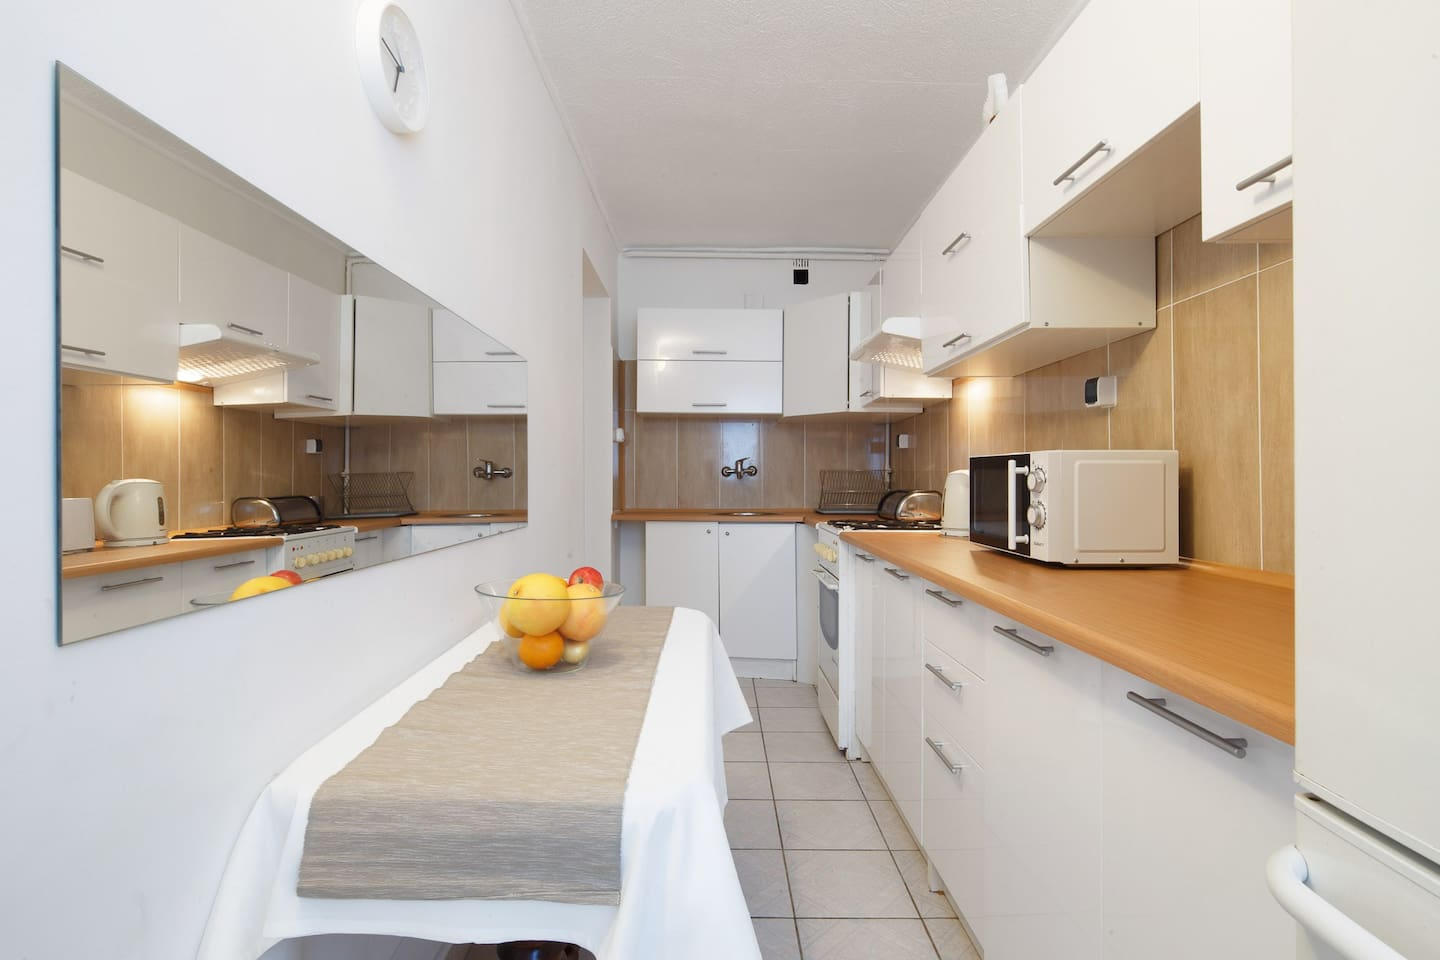 Kitchen equipped with fridge/freezer, microwave, stove, cooker, cooking utensils, pots and pans, crockery and cutlery. Kitchen is with a lake view, car park and view on the avenues taking you to our Silesia Park in one minute.